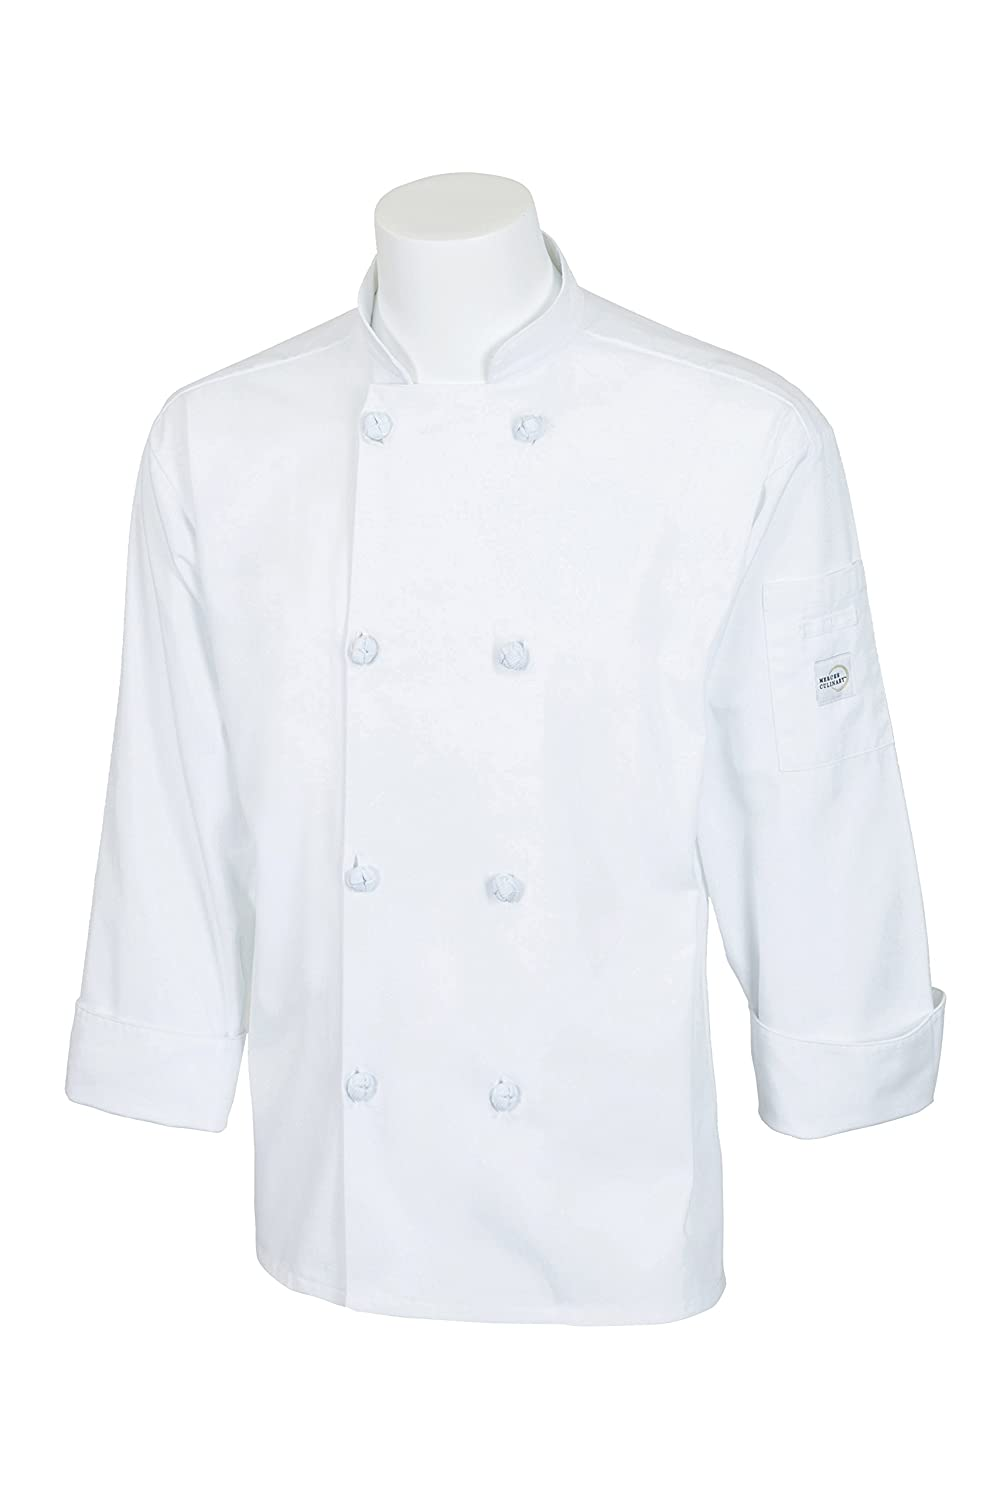 Mercer Culinary M60012BKXS Millennia Unisex Cook Jacket with Cloth Knot Buttons, X-Small, Black